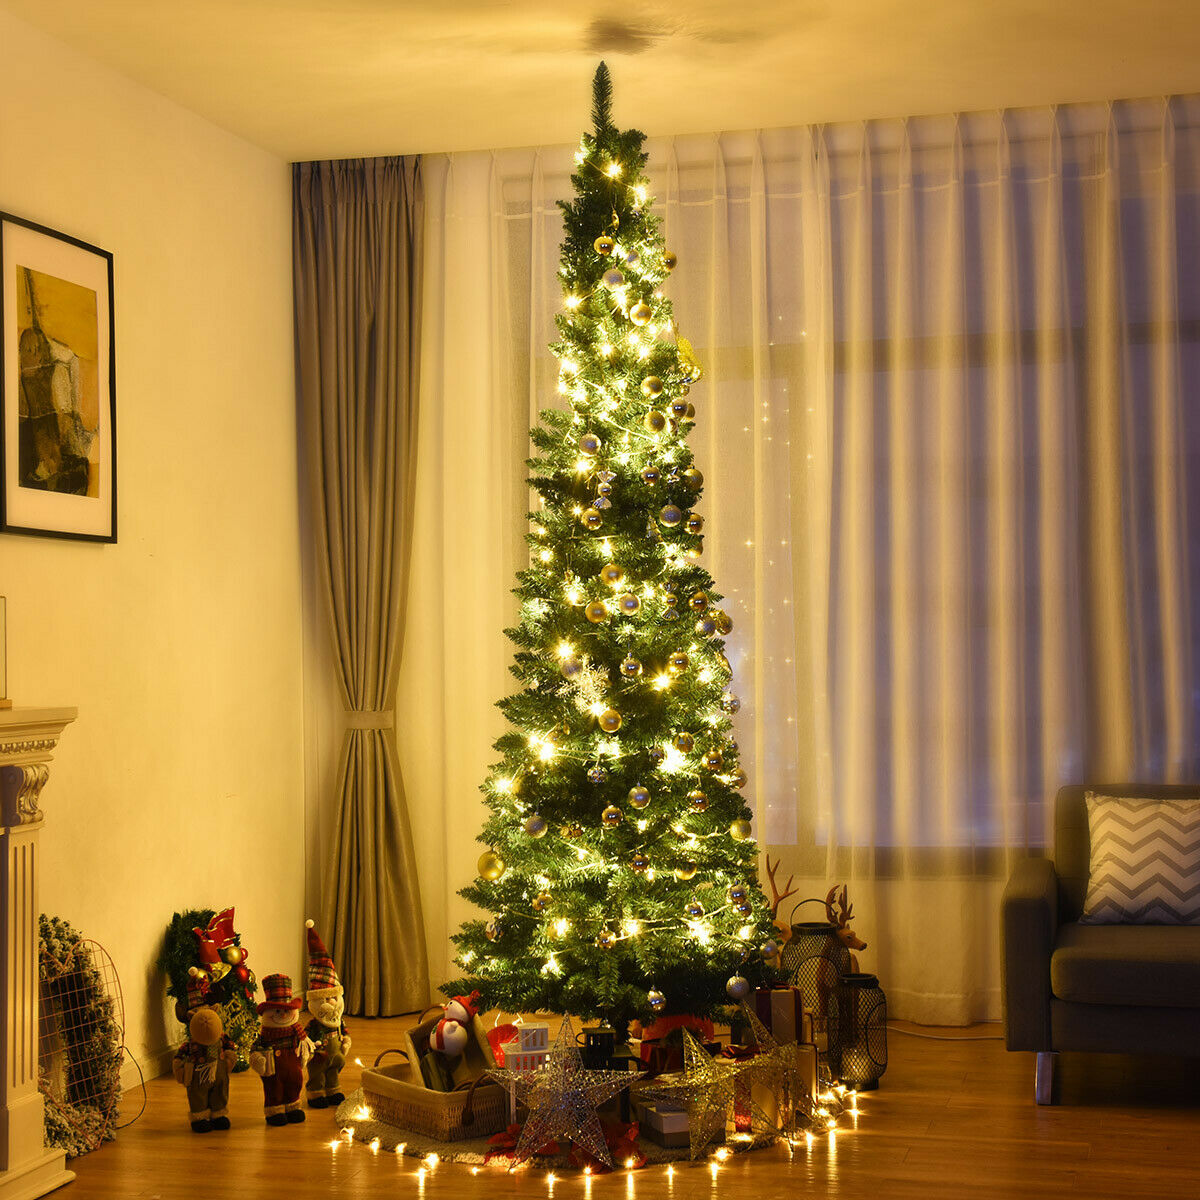 Gymax 8ft Pvc Artificial Pencil Christmas Tree Slim W Stand Home Holiday Decor Green Walmart Canada